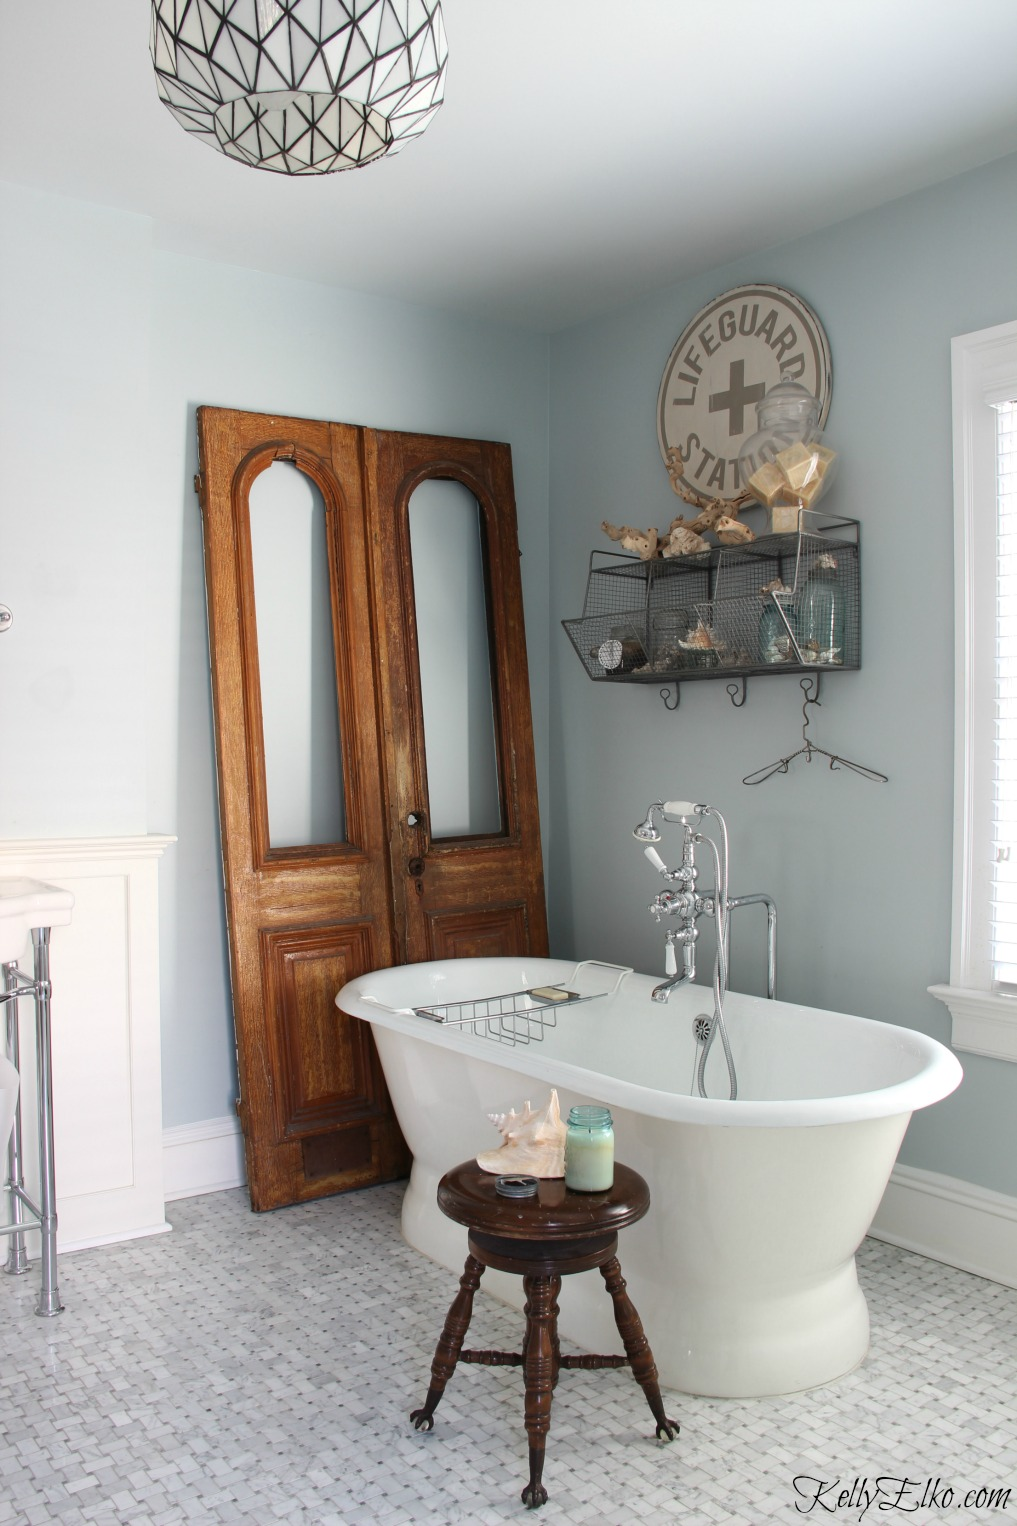 Antique arched doors add warmth to a bathroom kellyelko.com